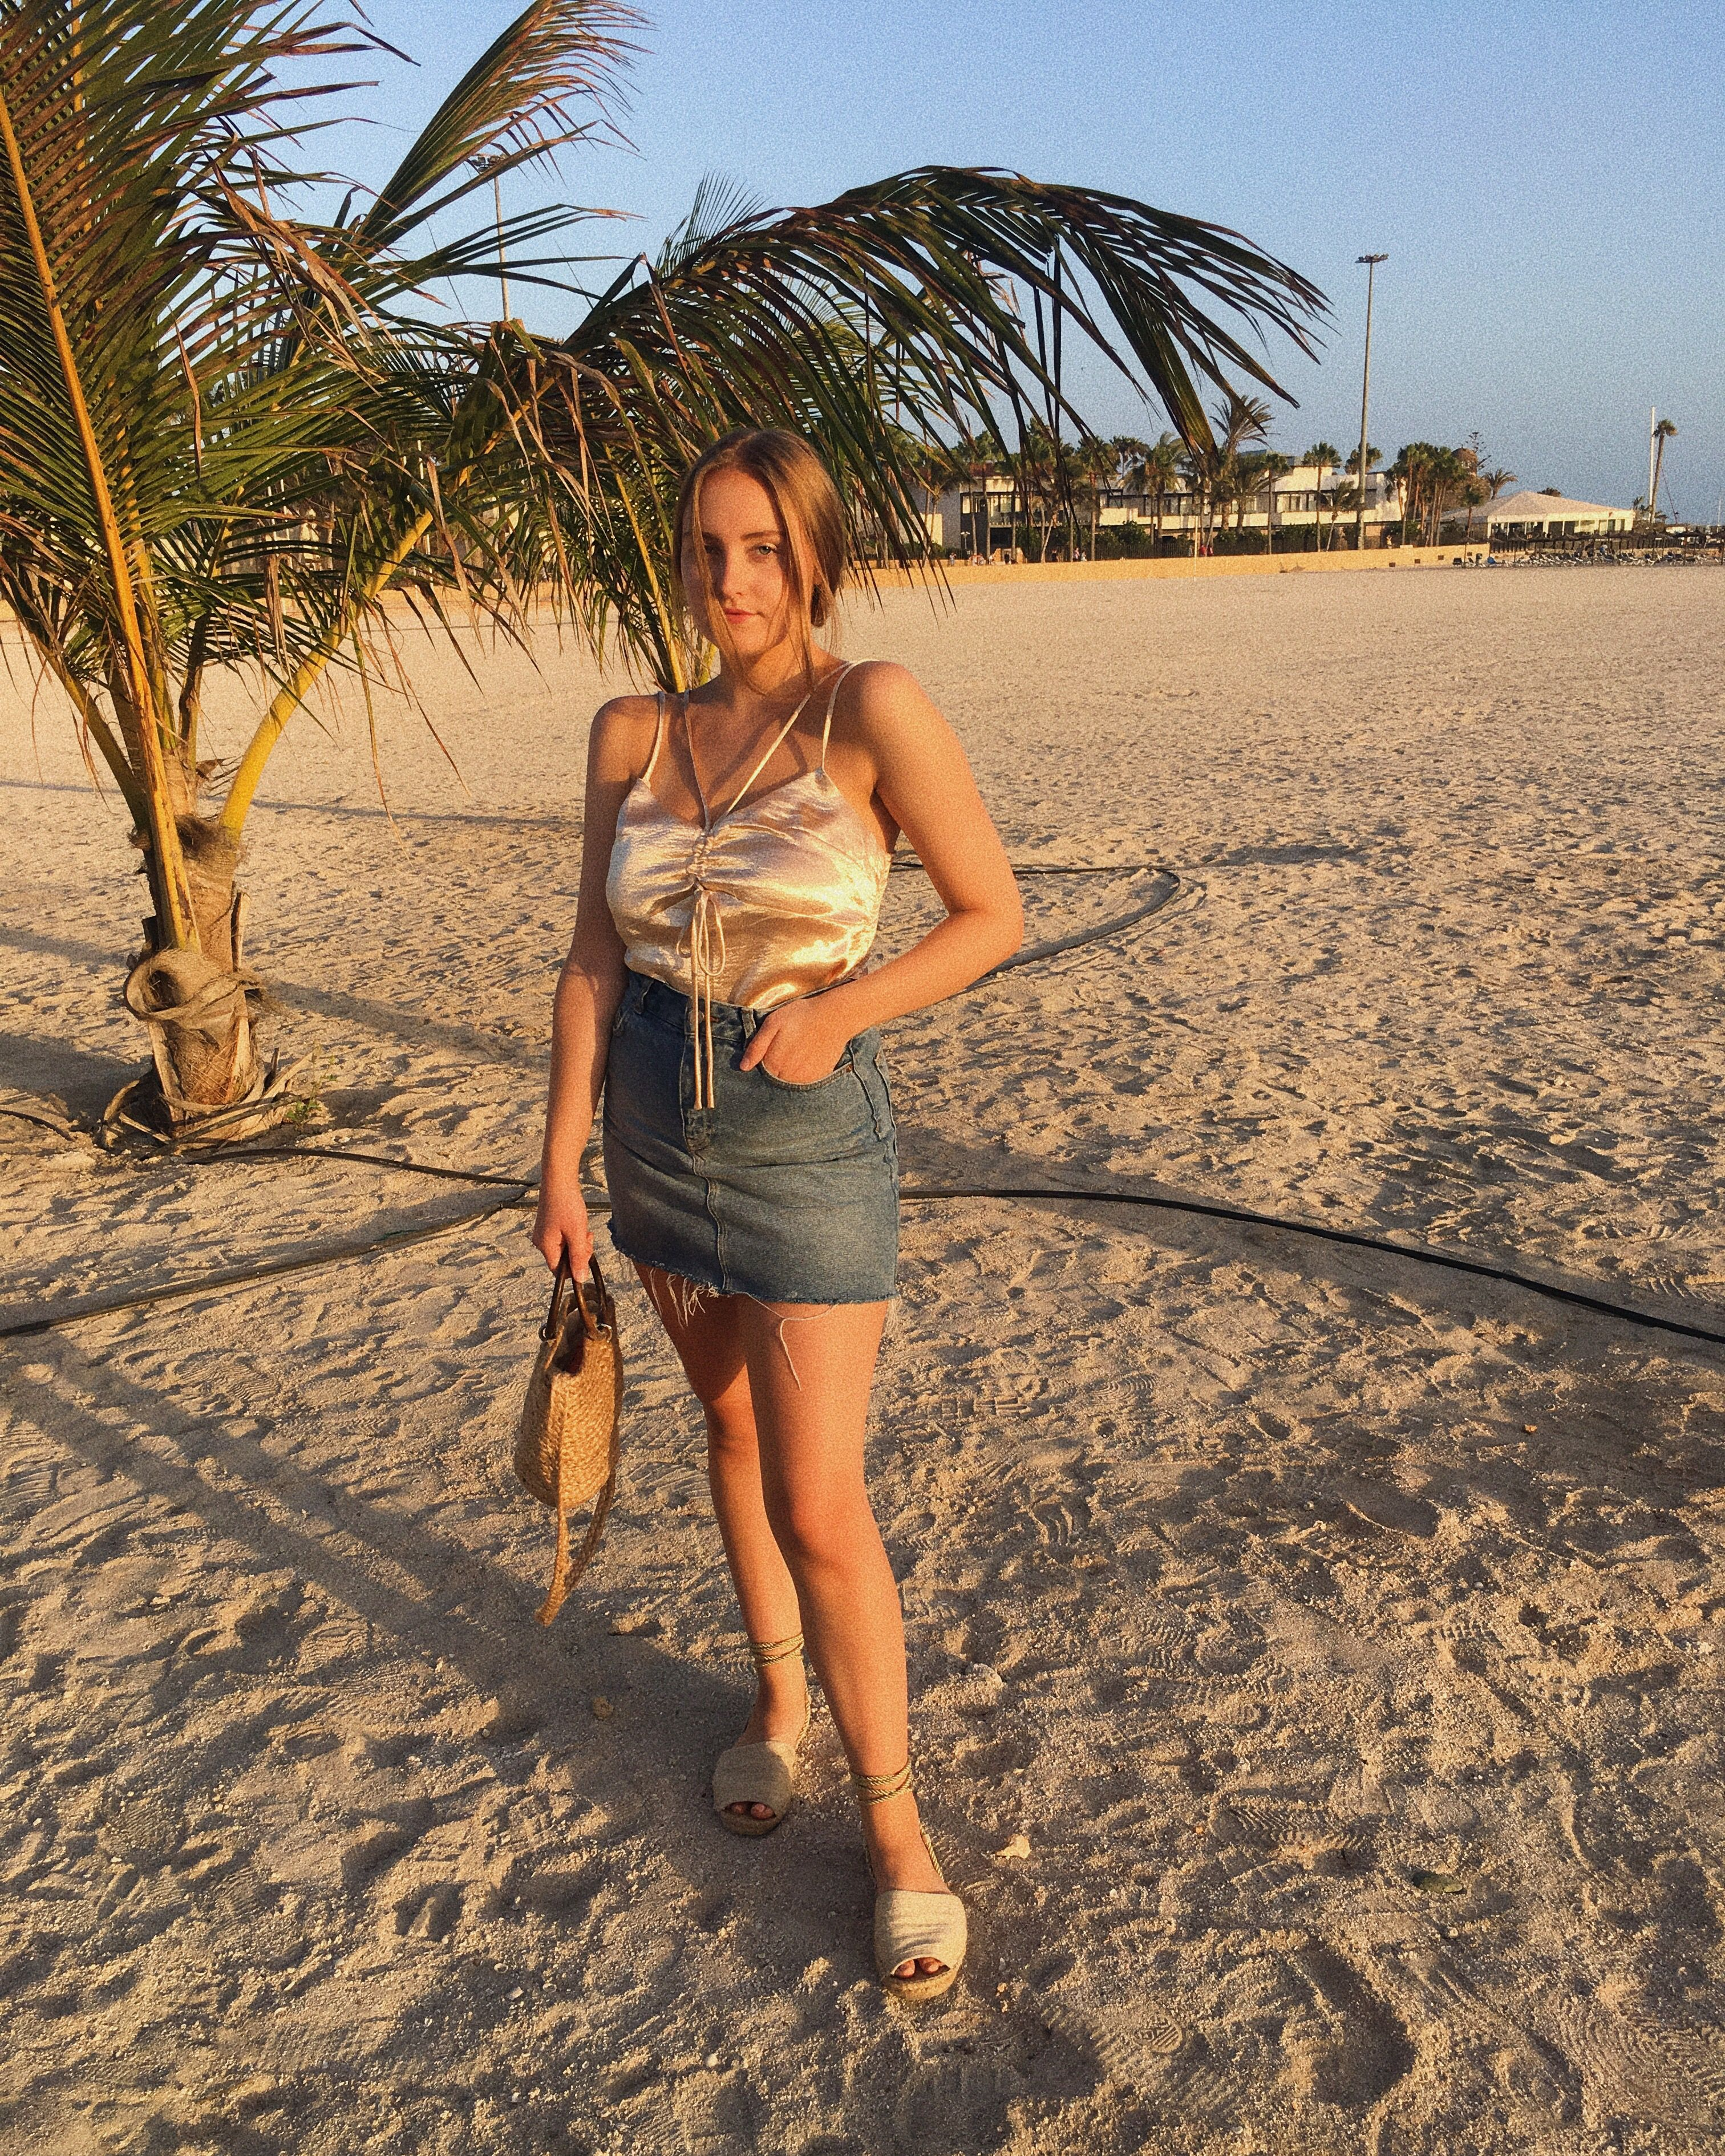 b24a476d34 Wearing gold and feeling glowy in the Spanish golden hour on the beach.  Top- Nasty Gal (bought through Depop) Denim Skirt- Pull & Bear (old)  Espadrilles- ...